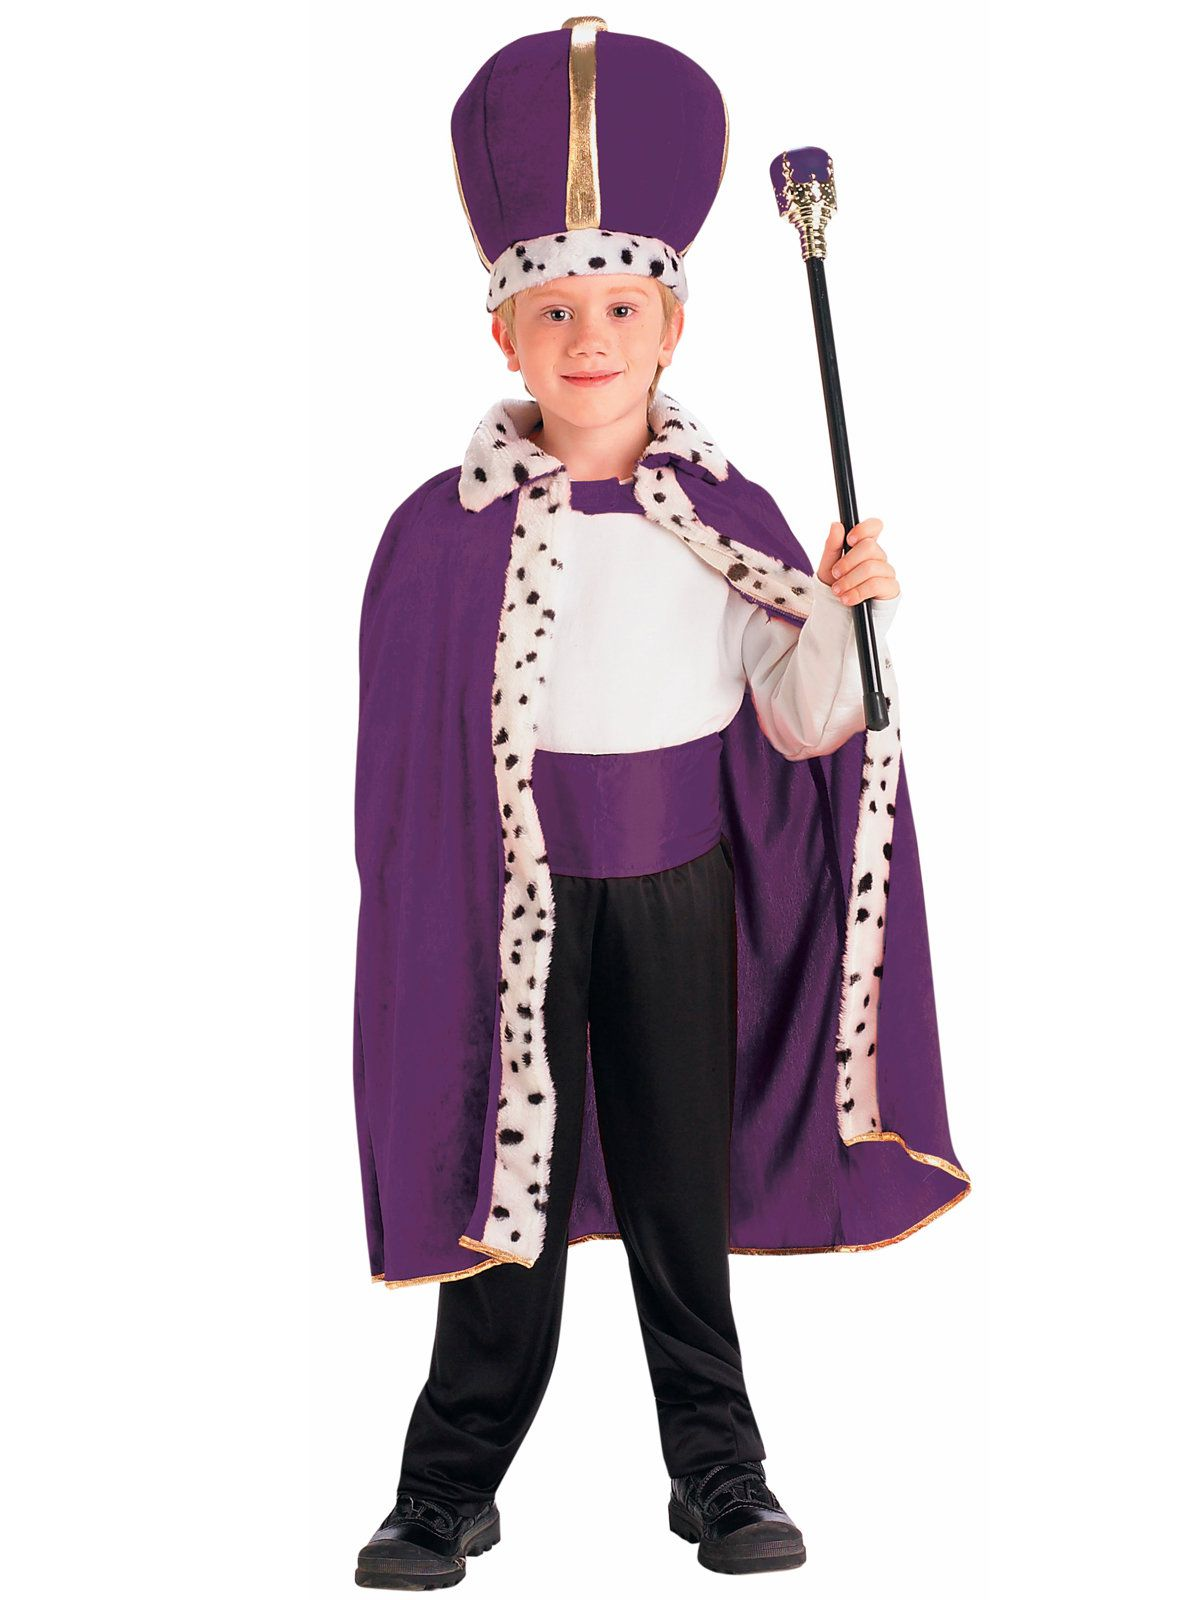 98563a7472 King Robe and Crown Set Purple - Child Costume - Boys Costumes for ...